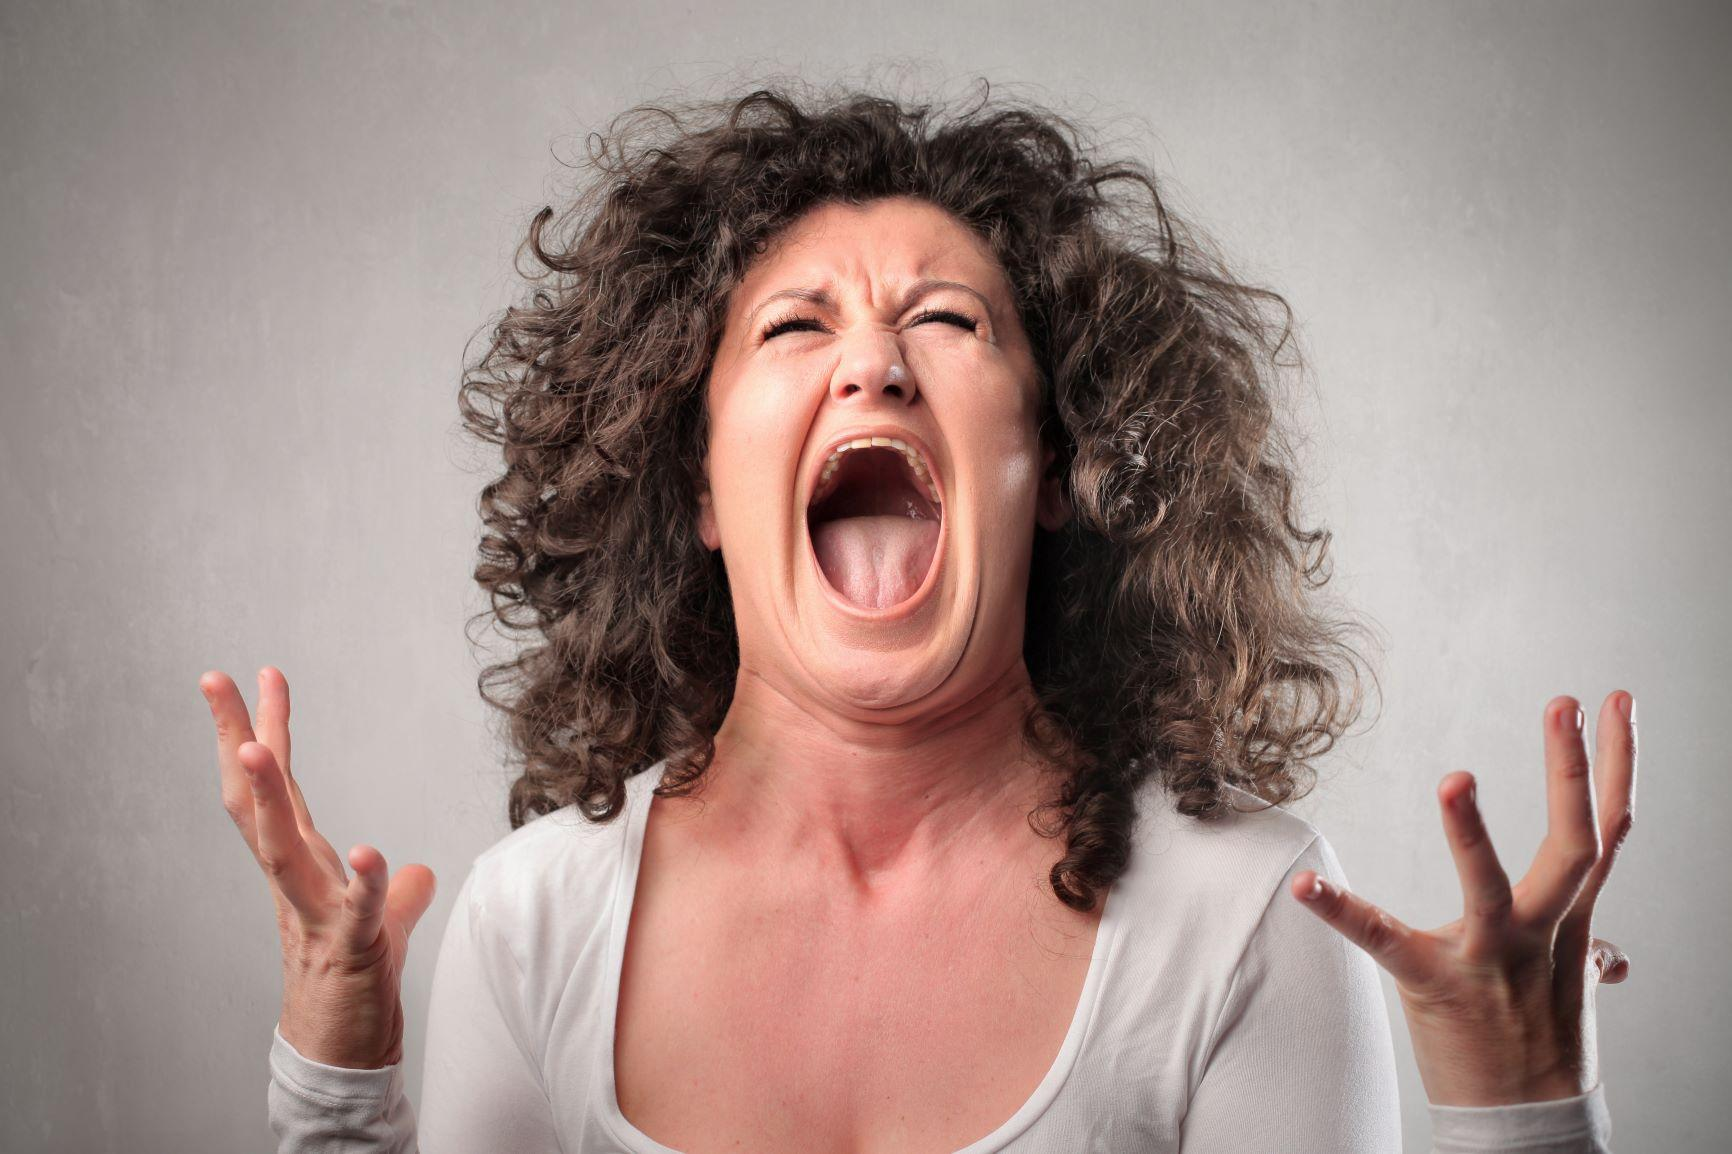 Hot Flash 101: What Your Mother Never Told You About Menopause and More